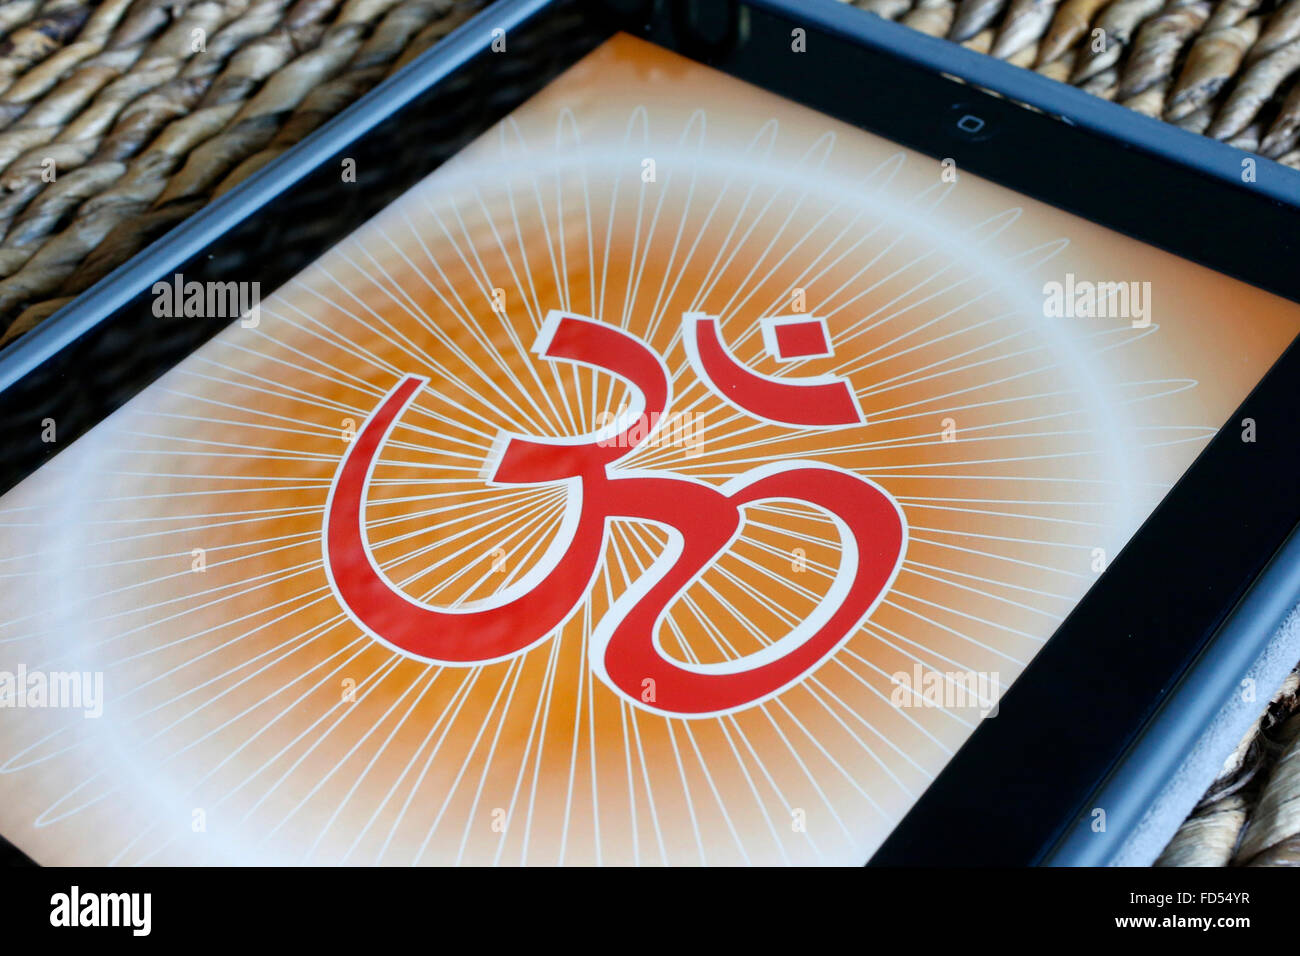 Om on an Ipad. The Om is a mantra and mystical Sanskrit syllable of Hindu origin. - Stock Image